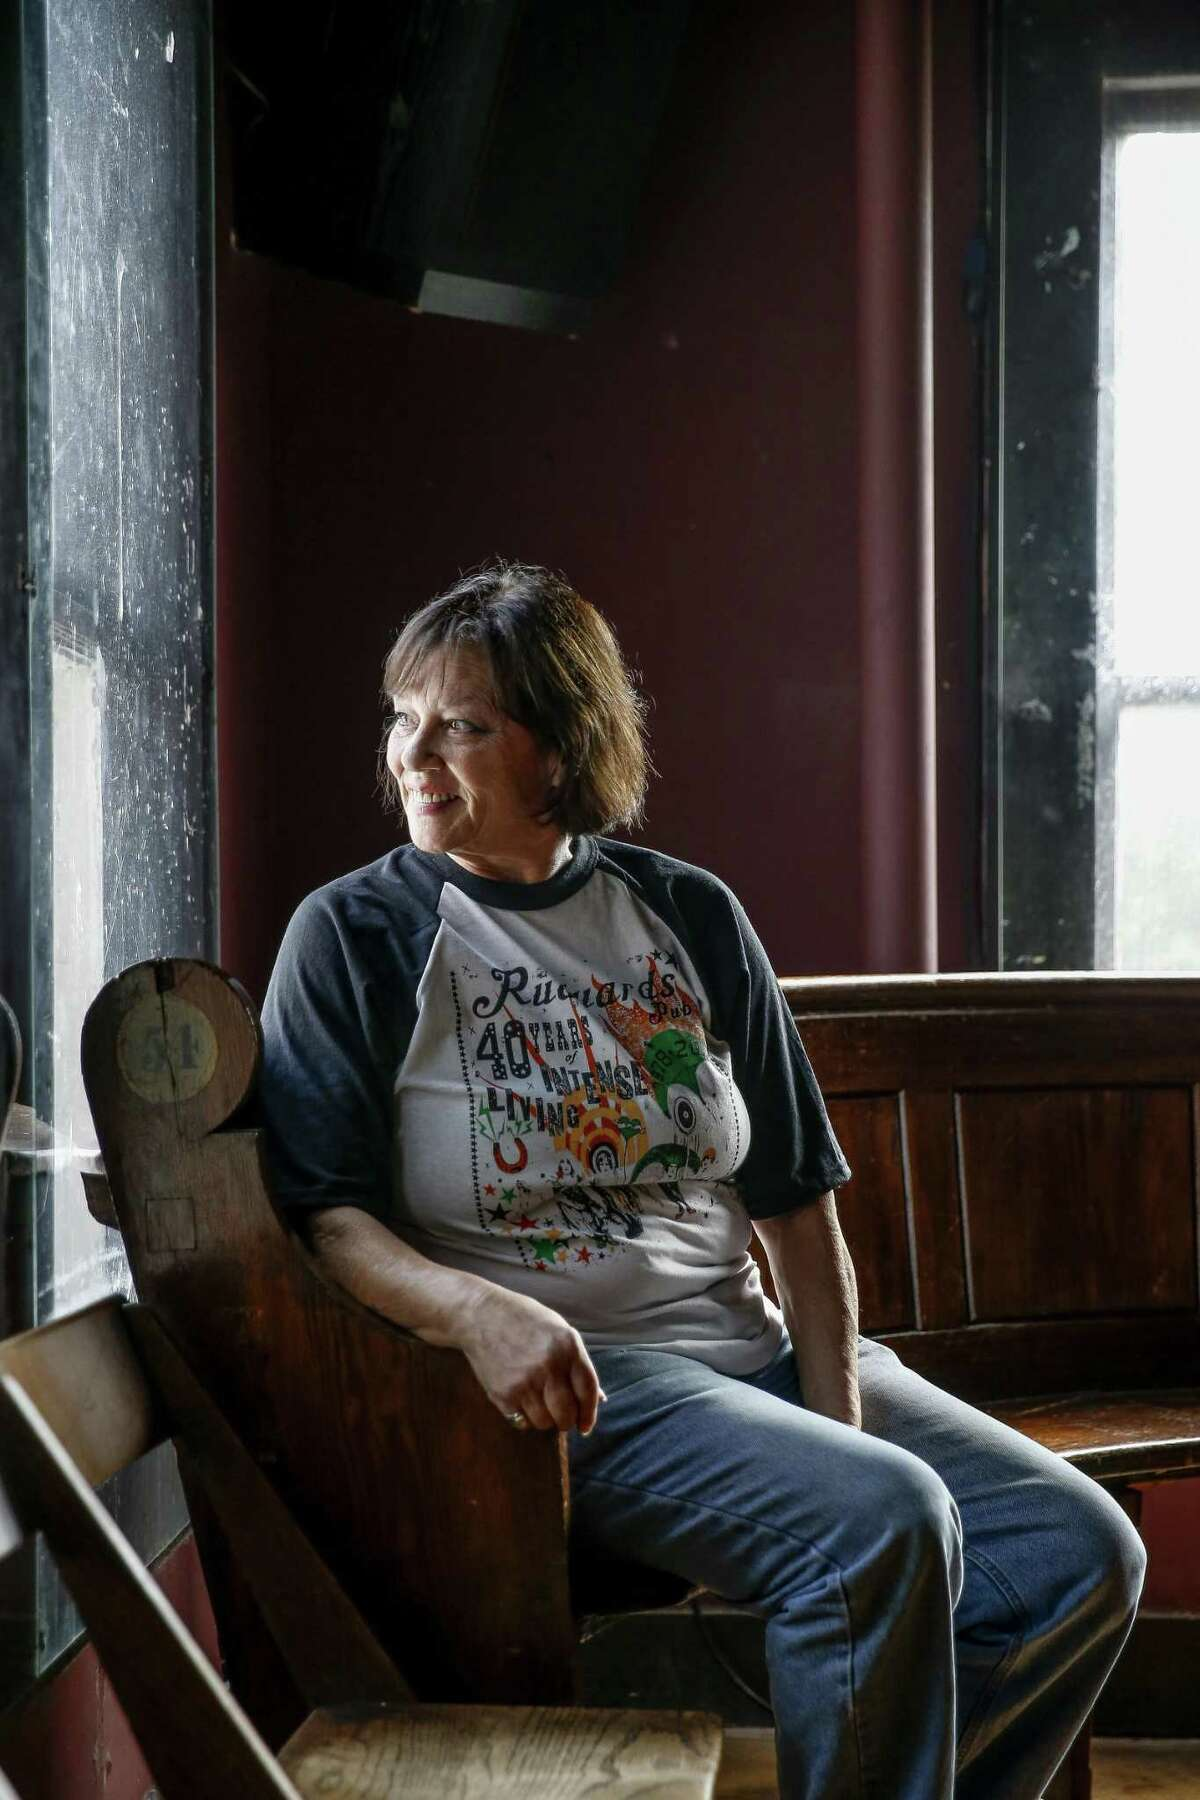 Rudyard's British Pub owner Lelia Rodgers sits on a bench from a London train station in the bar Friday Aug. 24, 2018 in Houston. The pub is celebrating its 40th year anniversary this year.